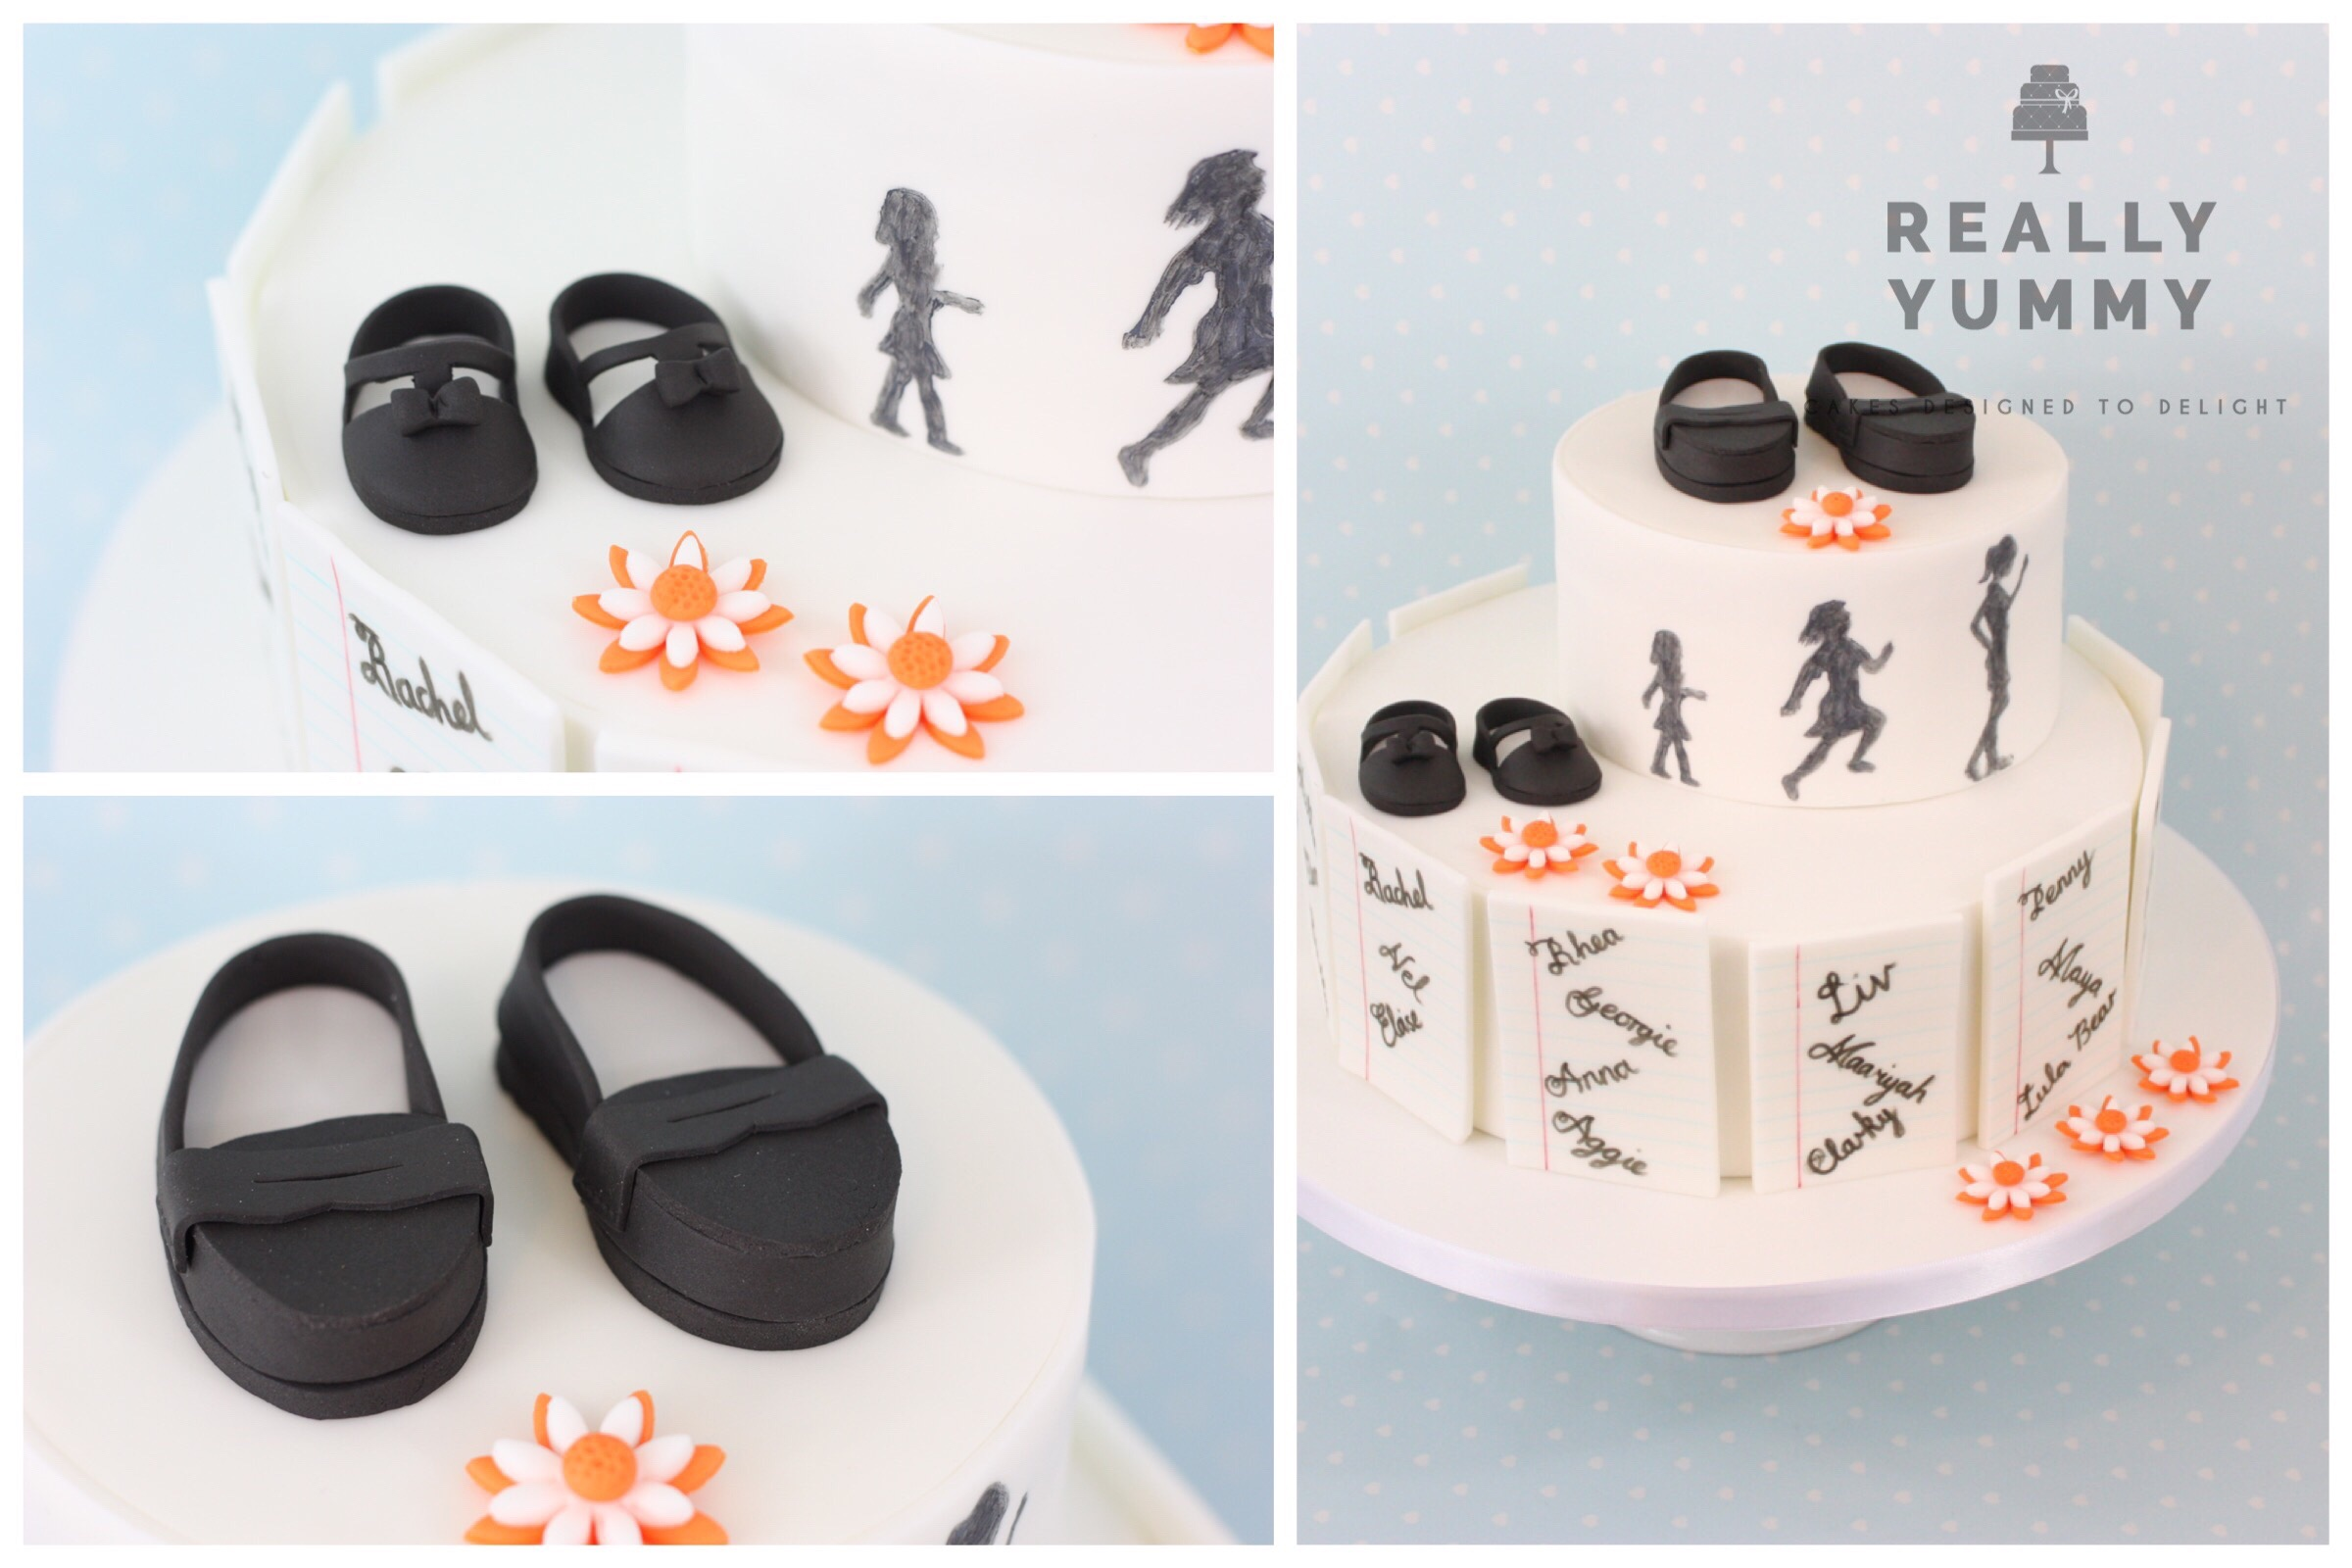 School leavers' cake with shoes